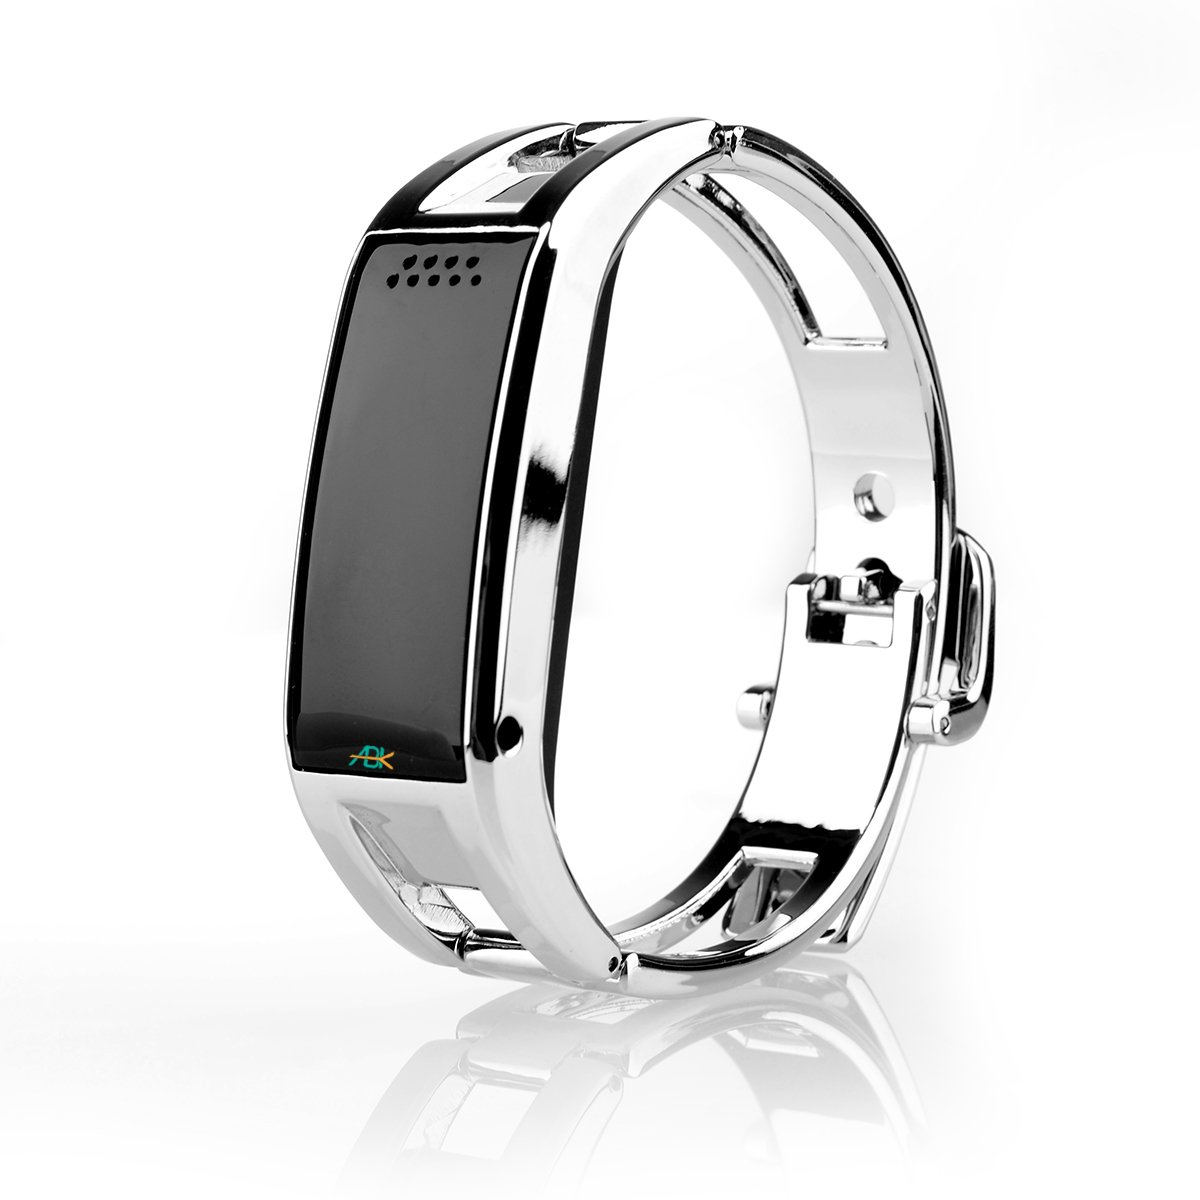 ABK Luxury Stainless Steel Bluetooth Sync Smart Watch Phone Bracelet For IOS Android iPhone 4 4S 5 5S Sumsung S3 S4 Note2 Note3 Note 4 (Silver)